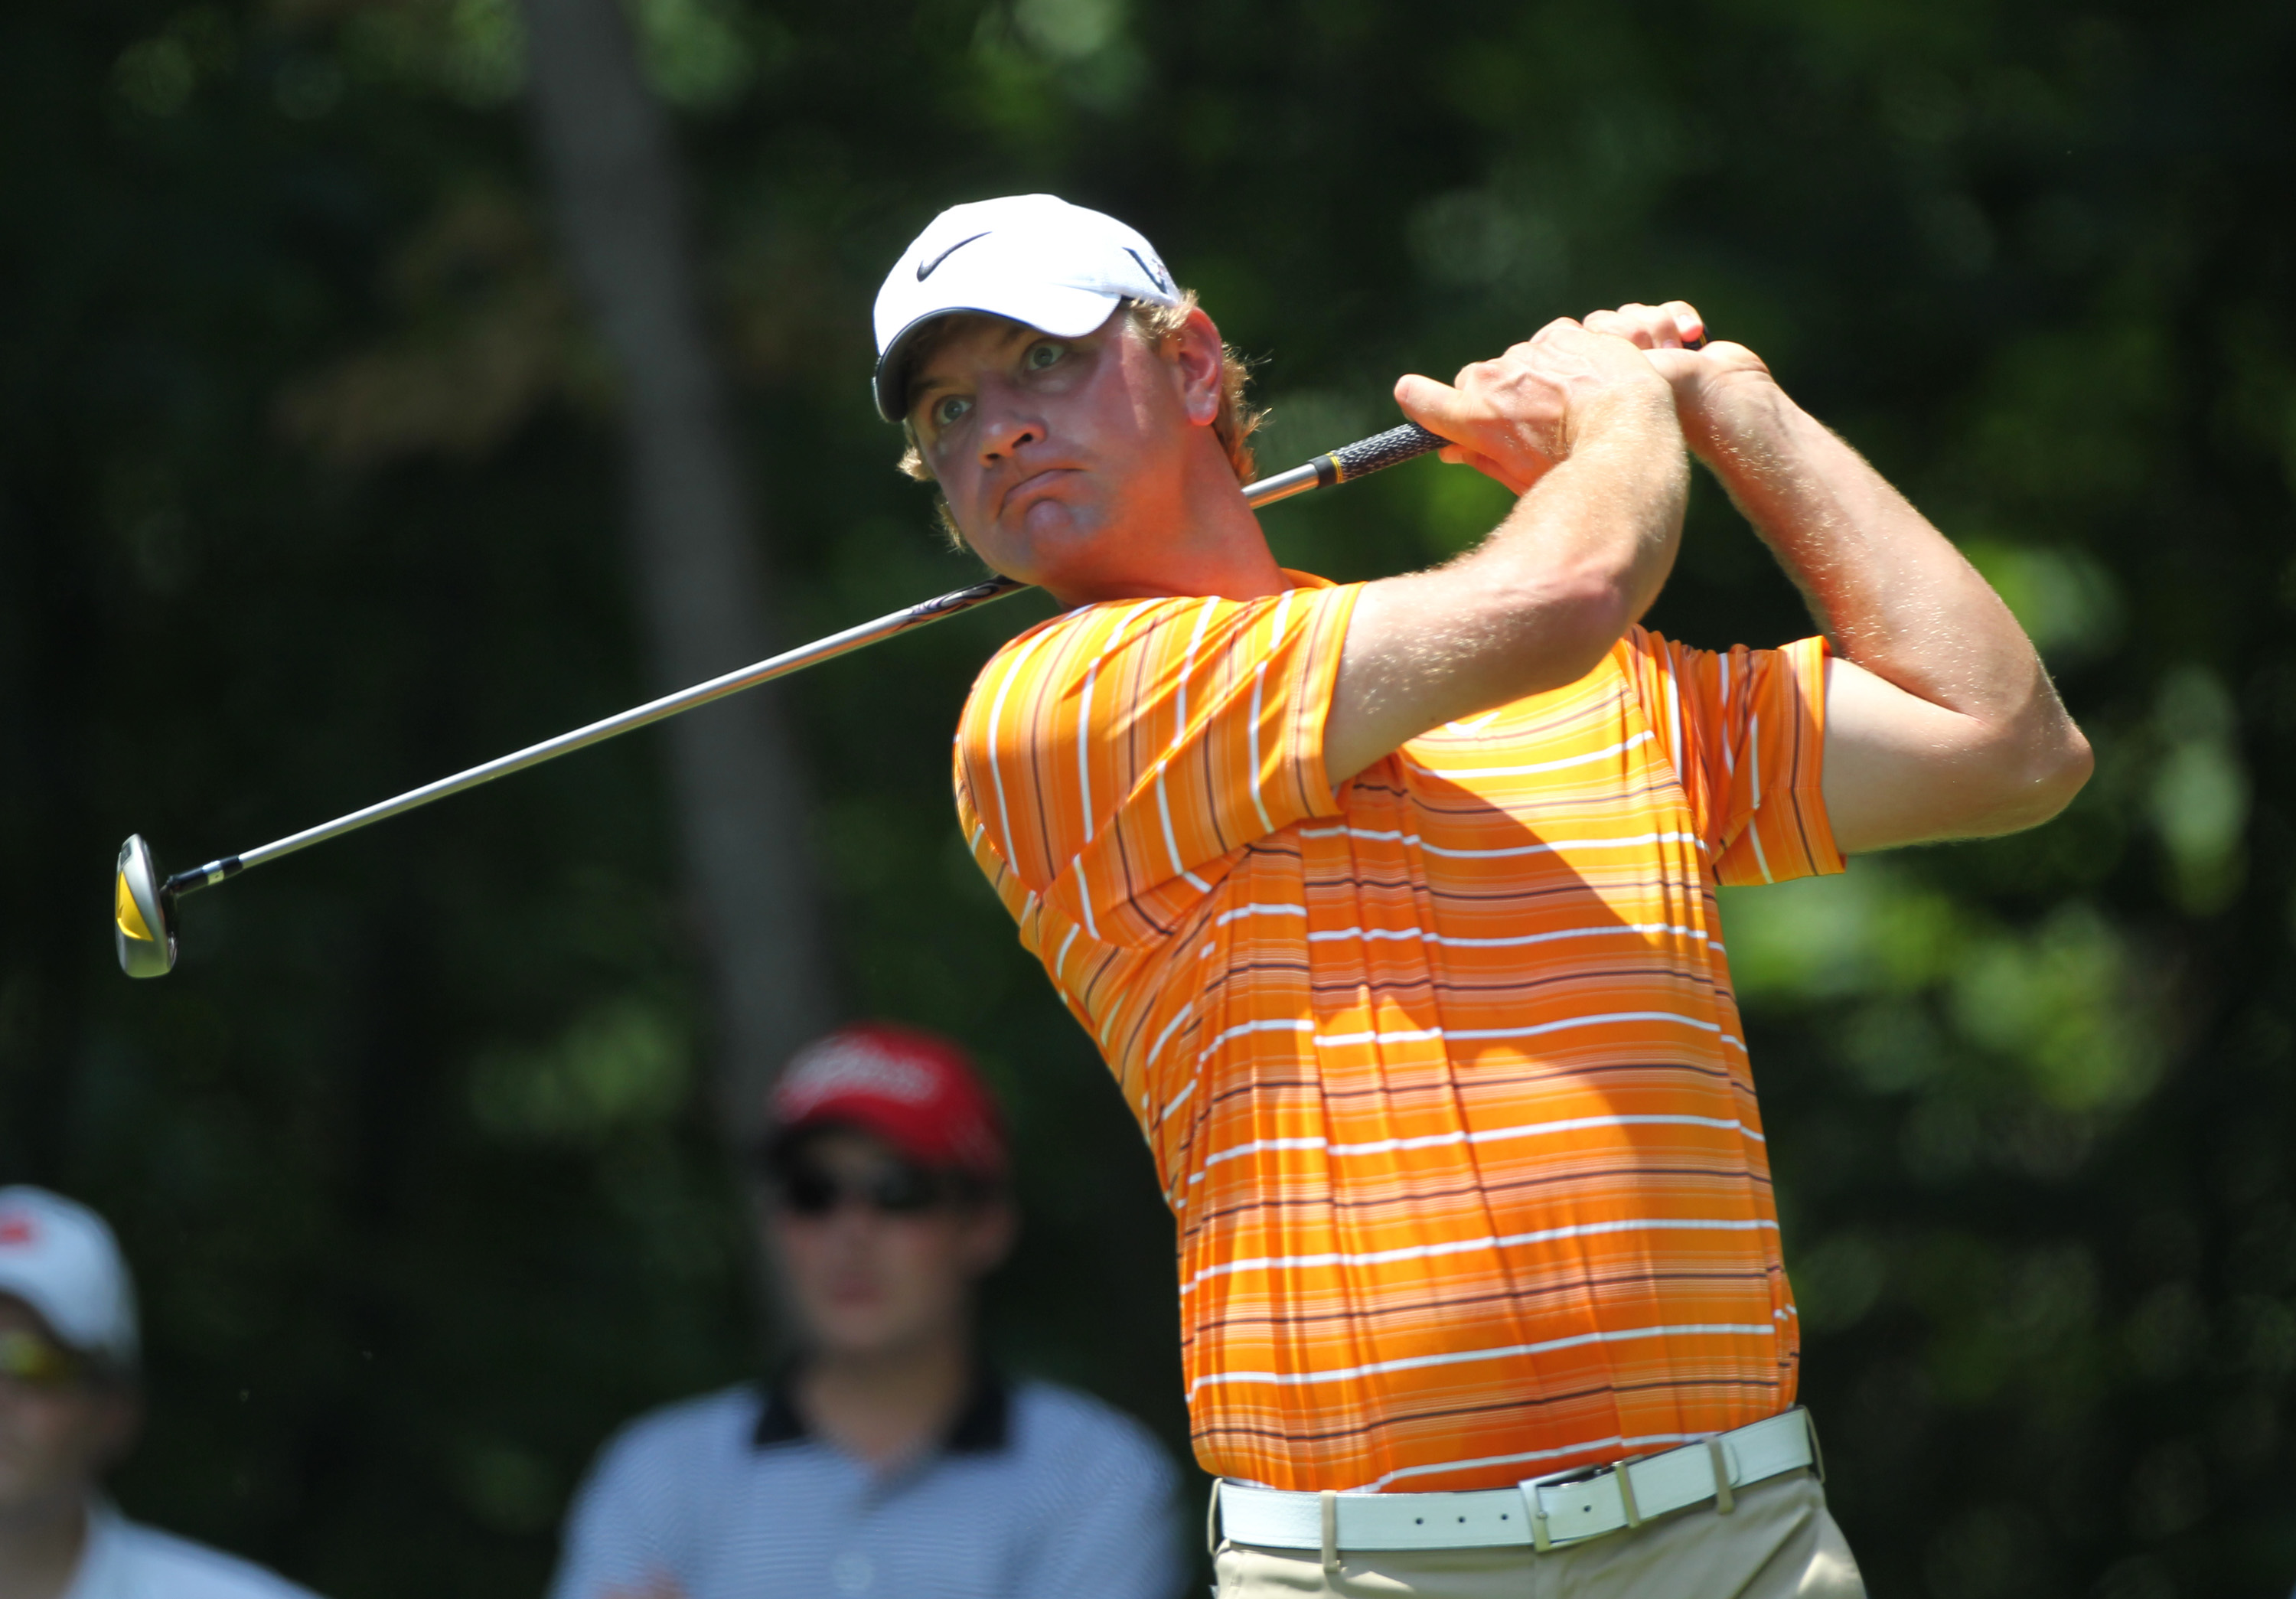 GREENSBORO, NC - AUGUST 21: Lucas Glover hits his tee shot on the second hole during the third round of the Wyndham Championship at Sedgefield Country Club on August 21, 2010 in Greensboro, North Carolina. (Photo by Hunter Martin/Getty Images)